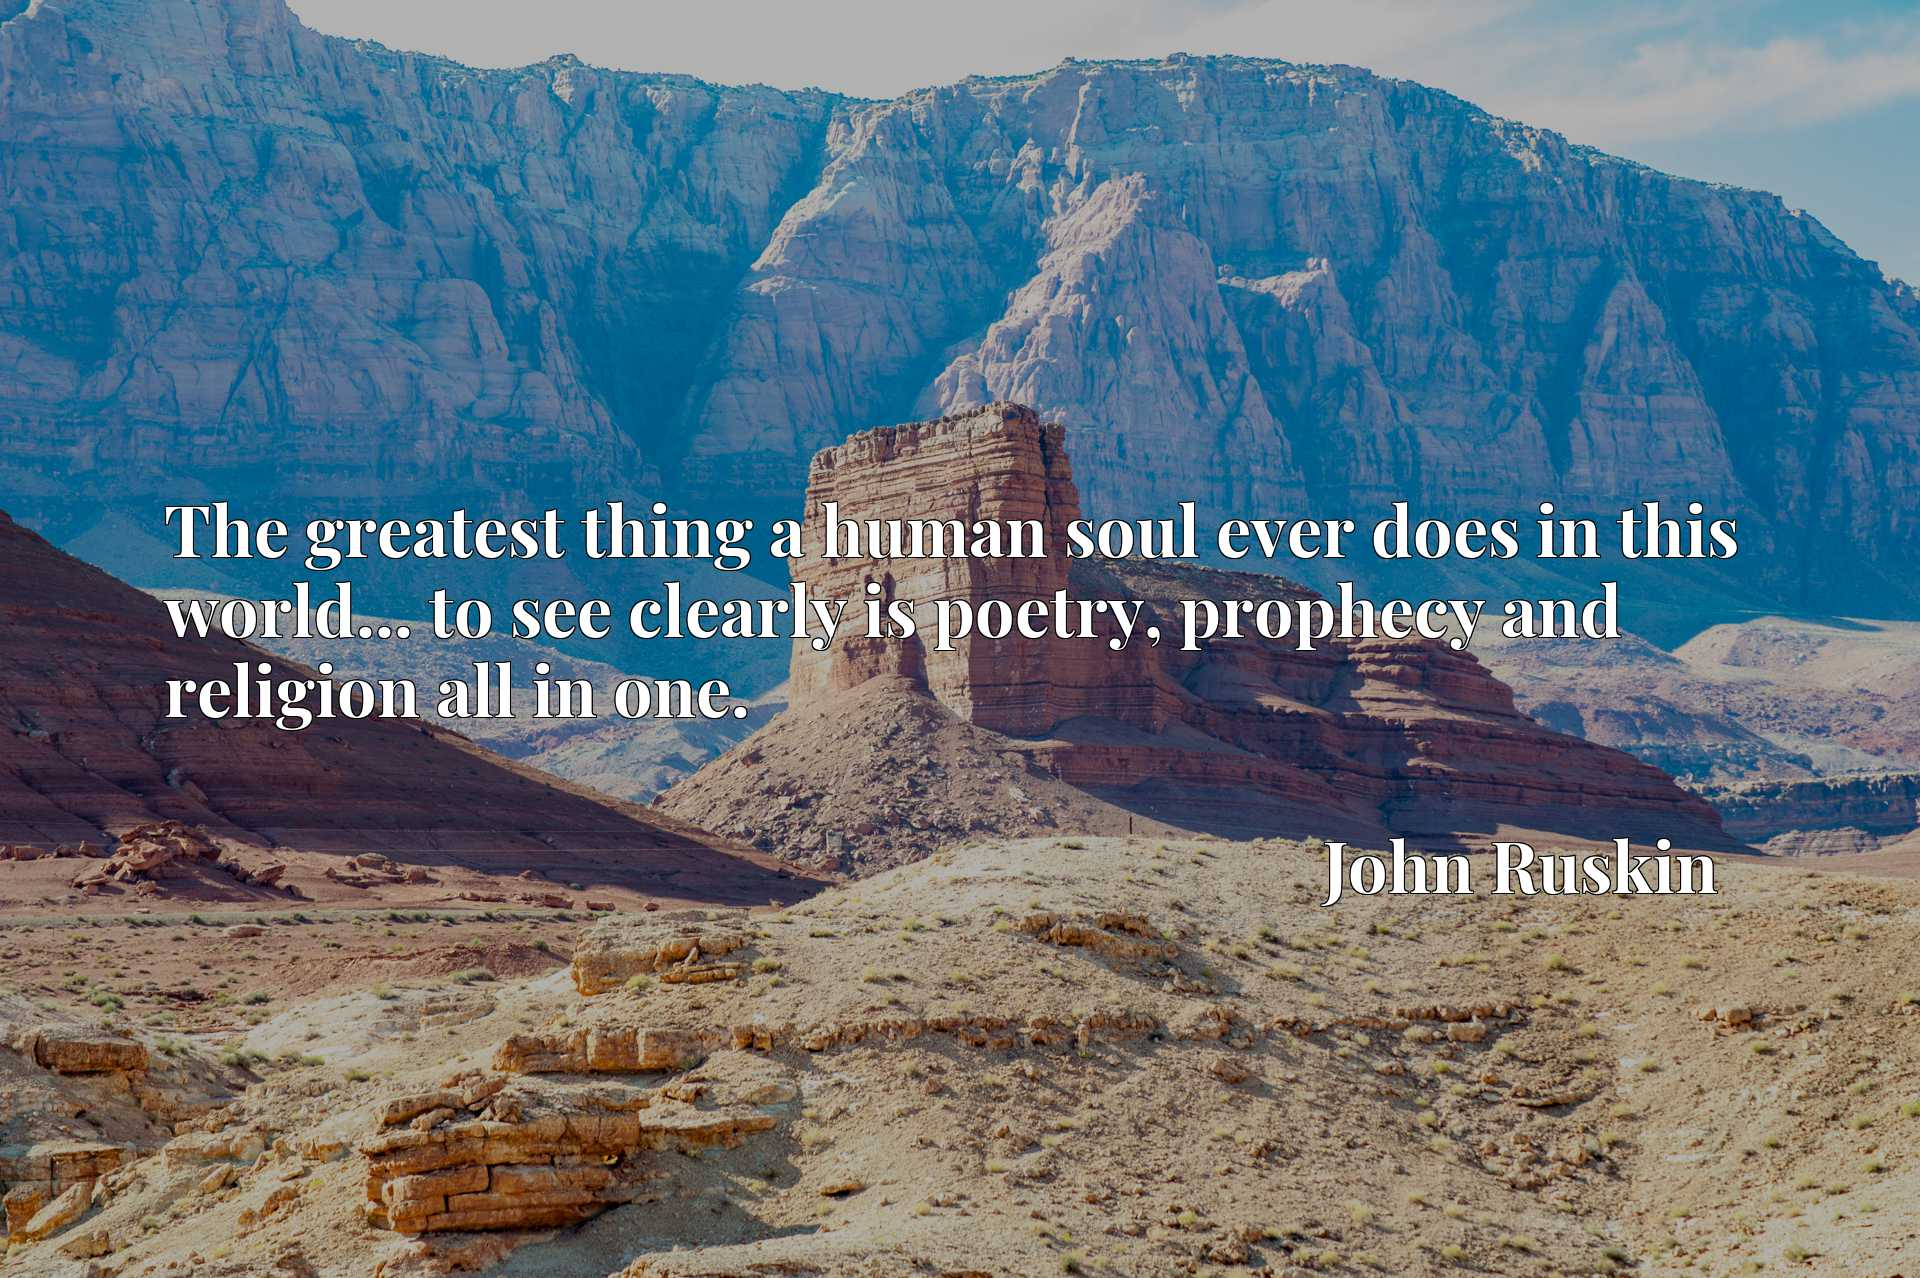 The greatest thing a human soul ever does in this world... to see clearly is poetry, prophecy and religion all in one.